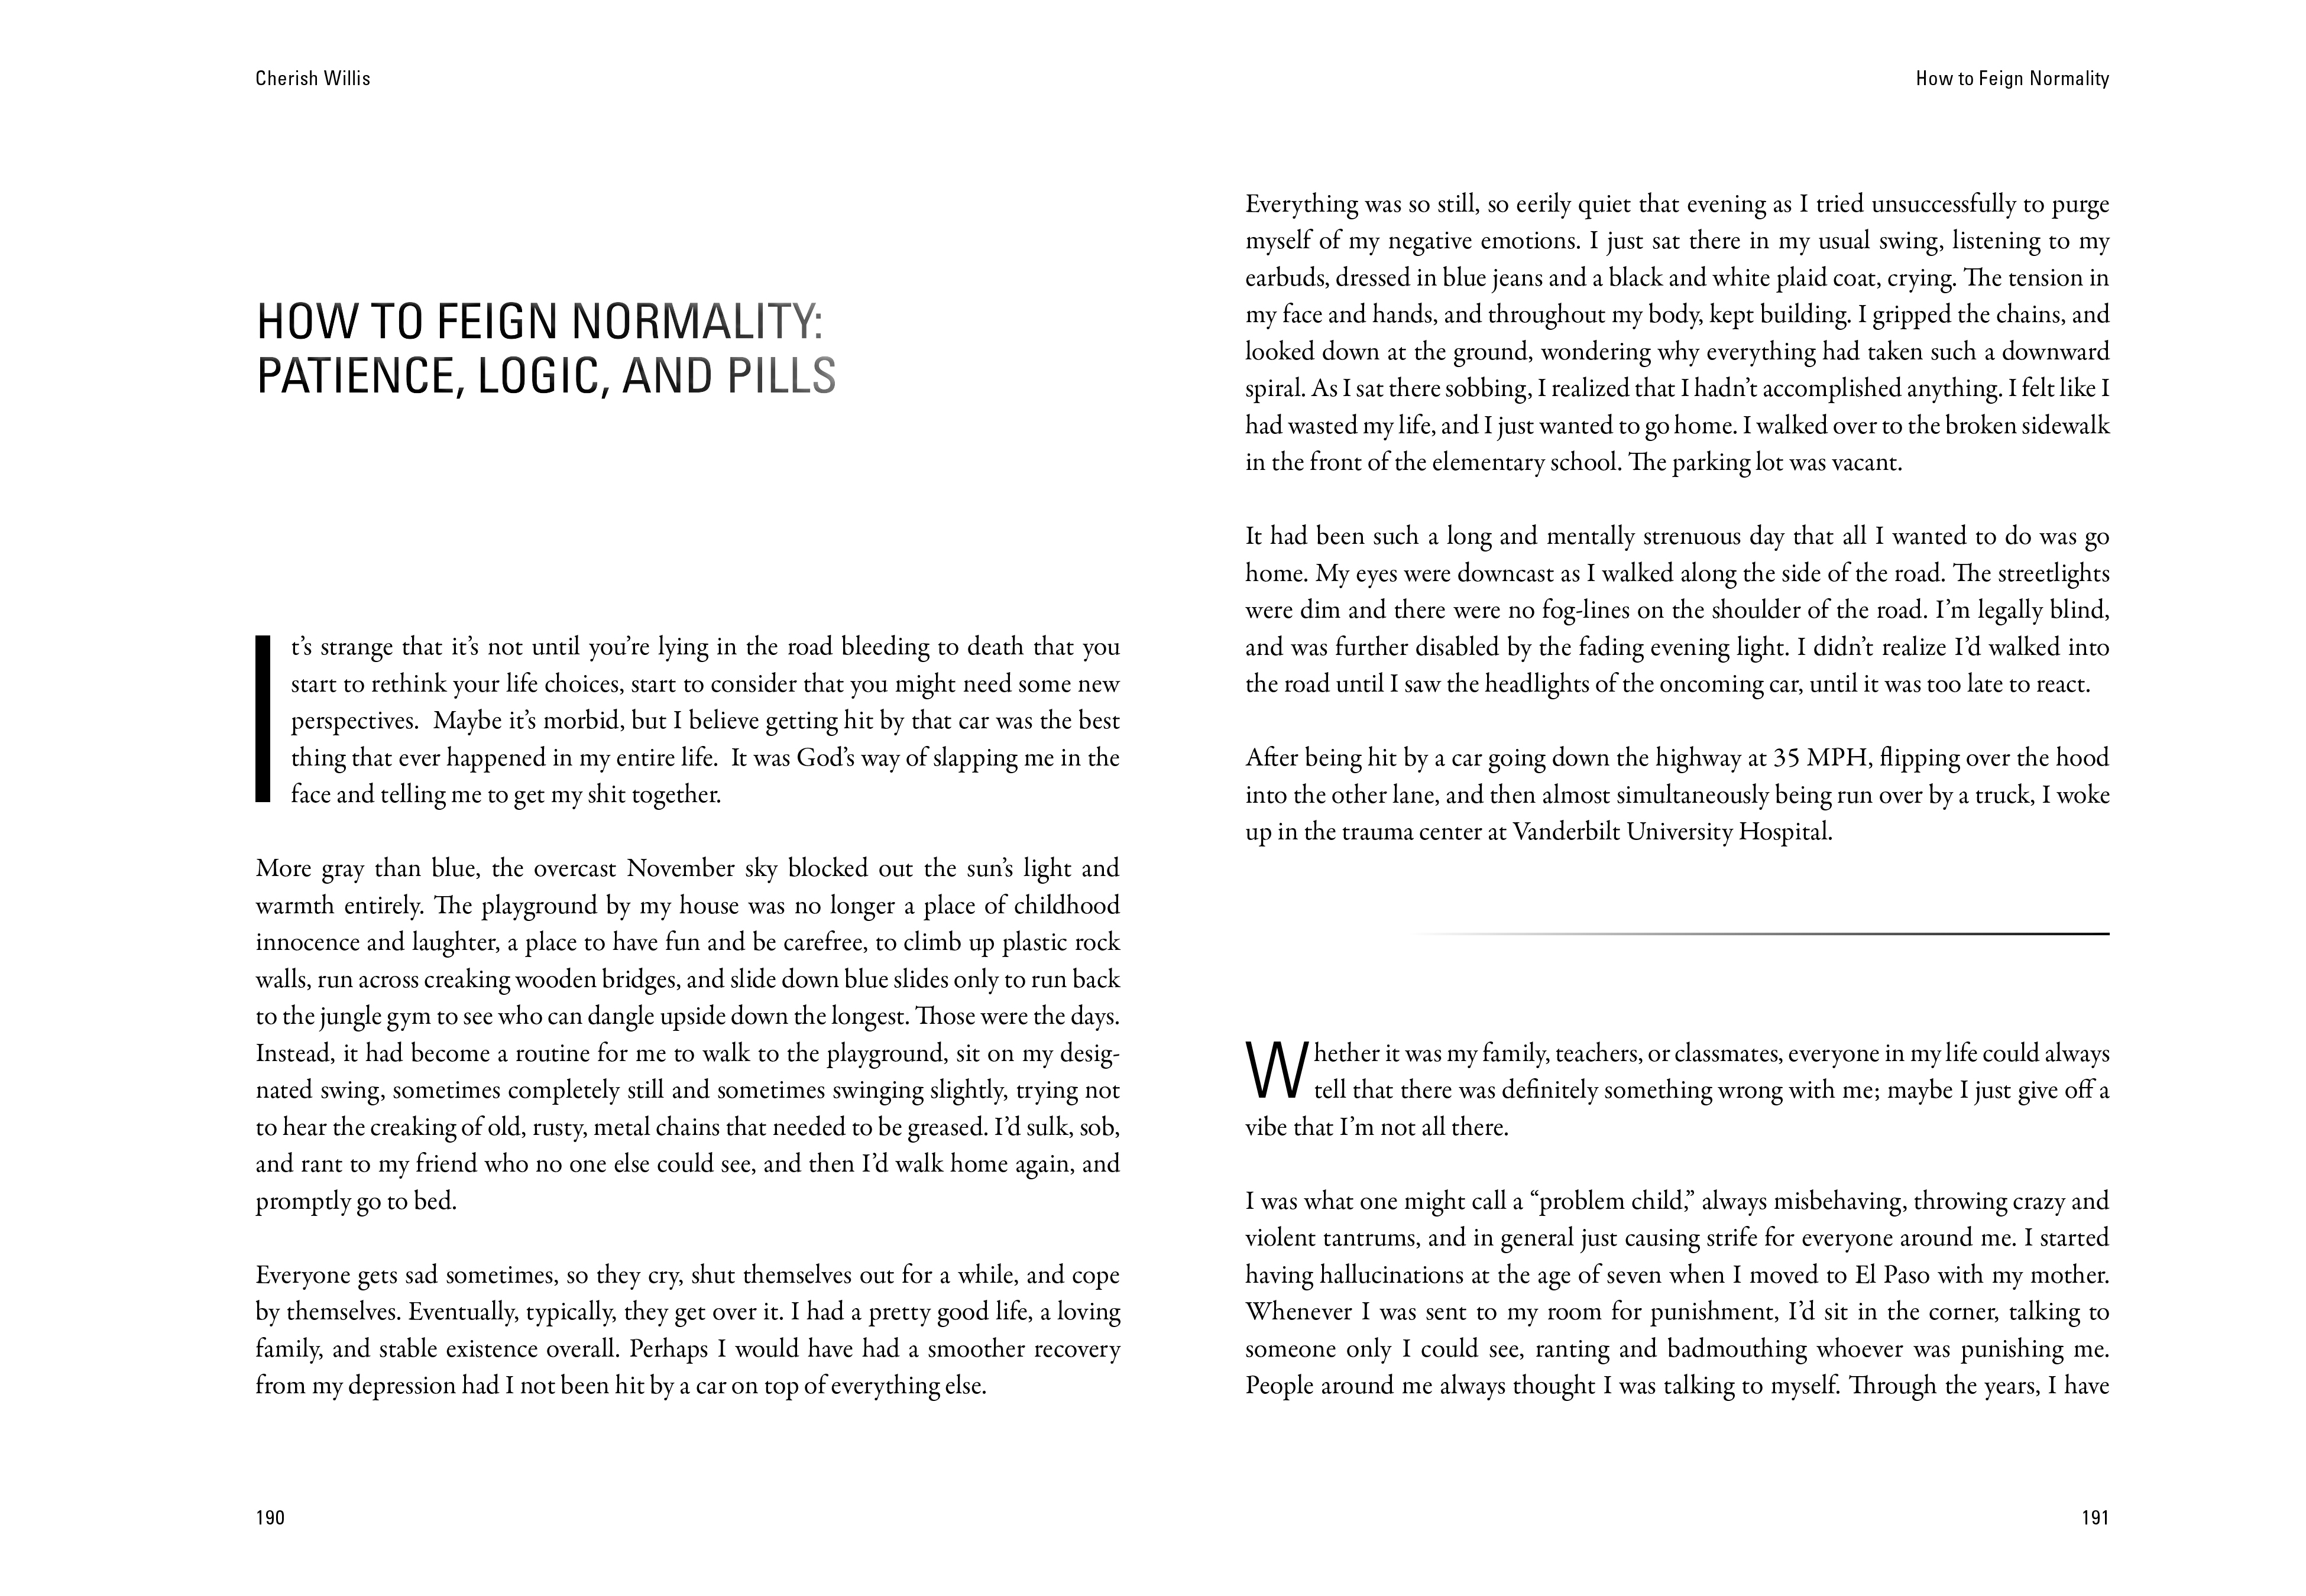 """Excerpt from """"How to Feign Normality: Patience, Logic, and Pills"""" by Cherish Willis"""